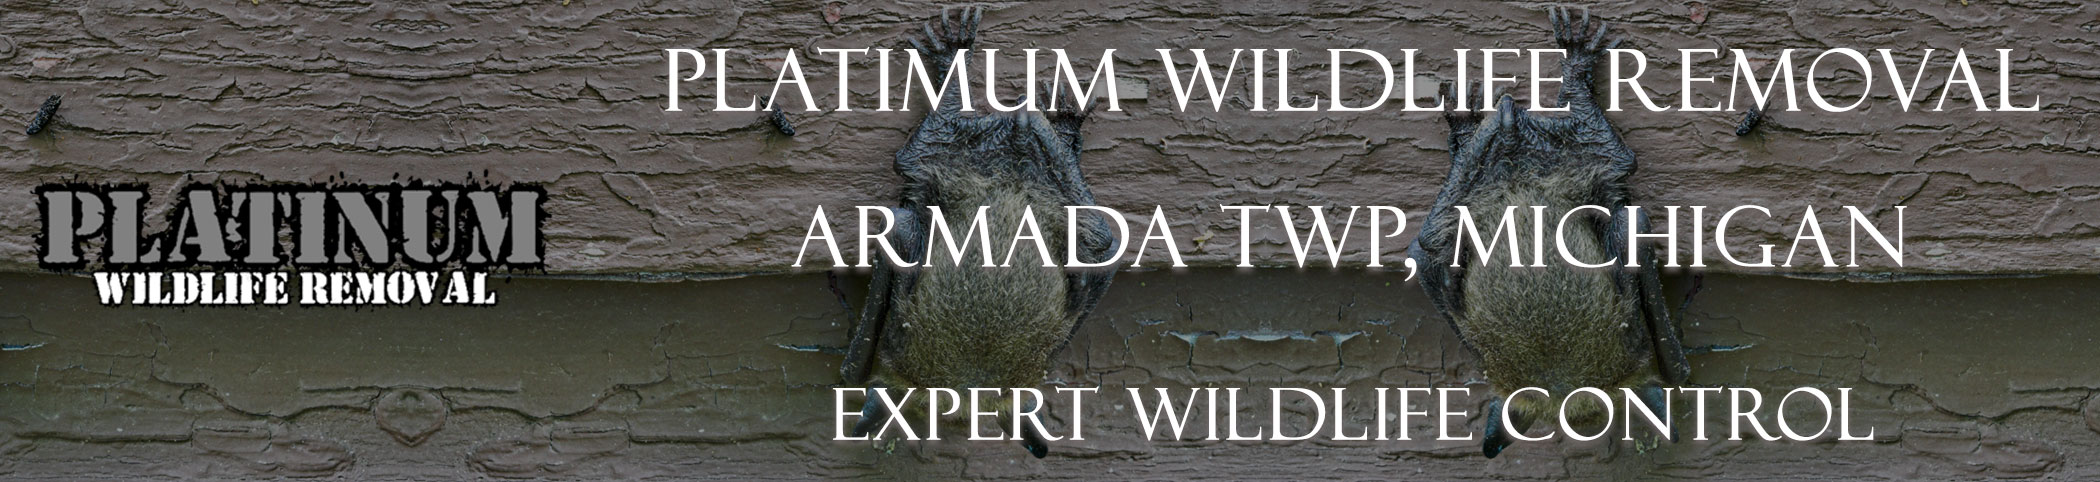 Armada-TWP-Platinum-Wildlife-Removal-michgan